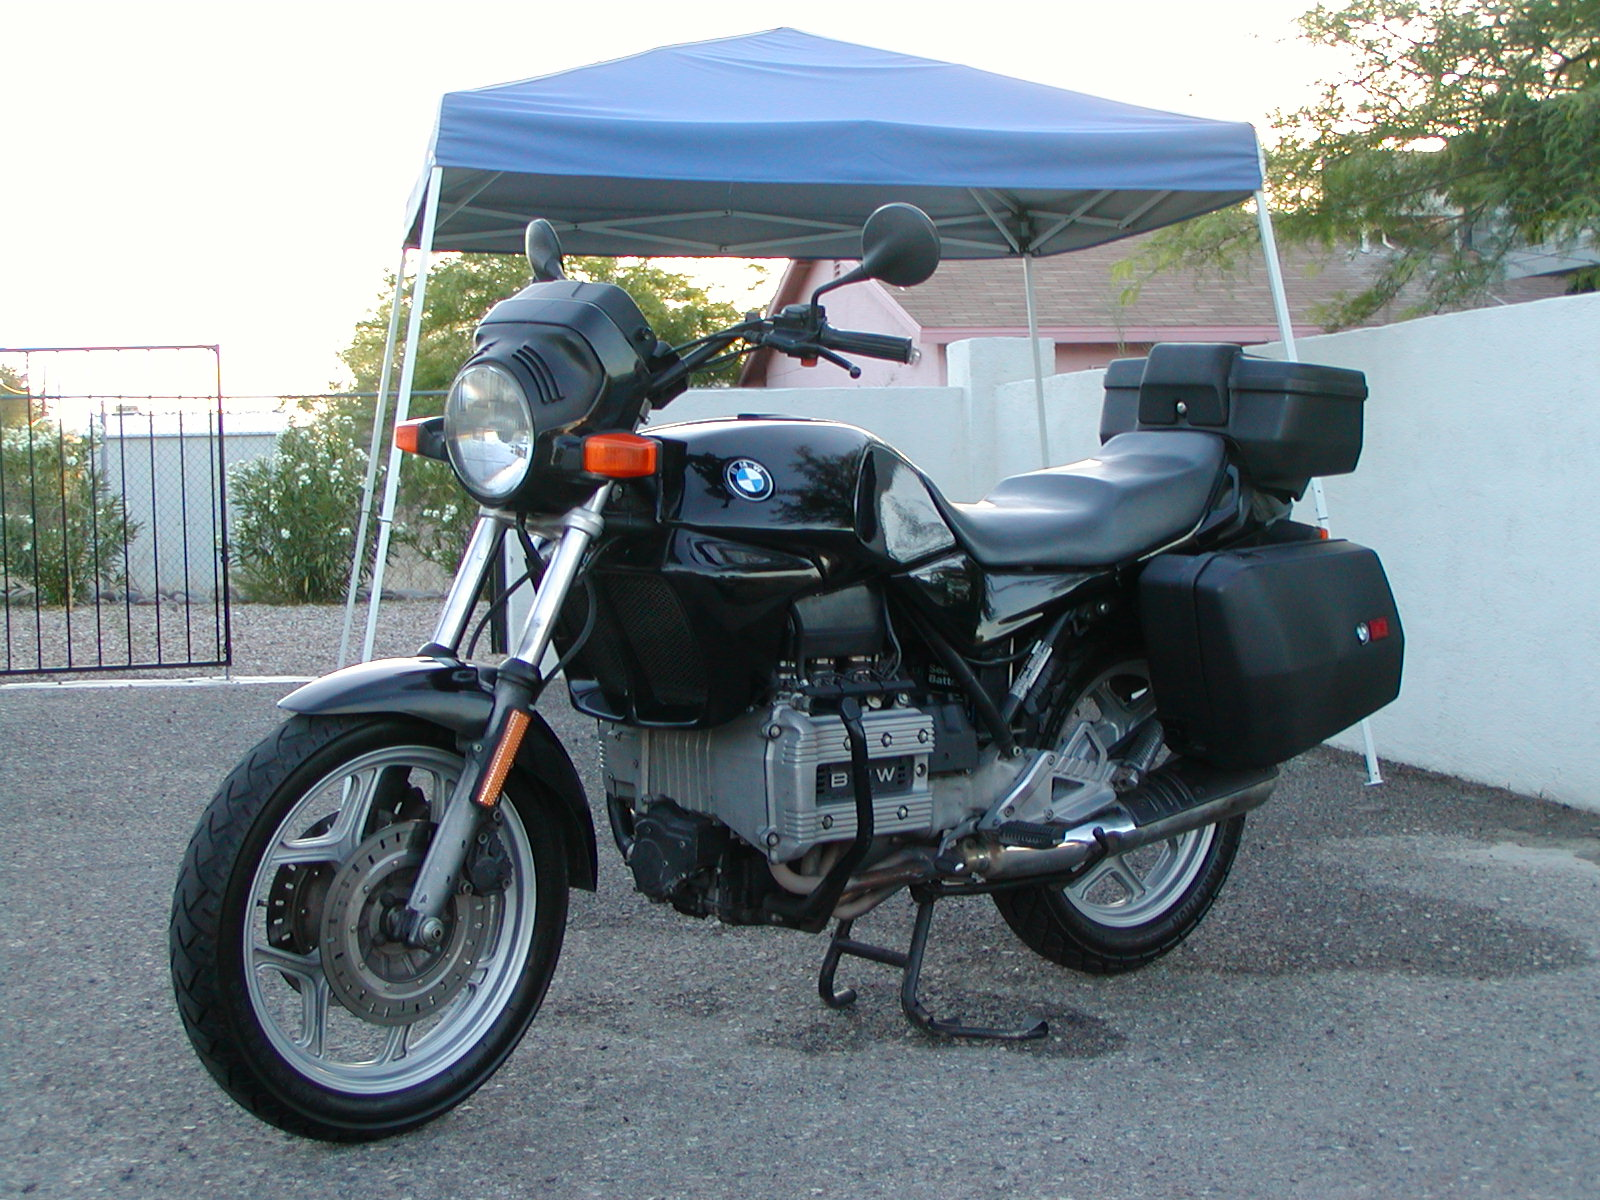 BMW K75RT 1991 images #5095